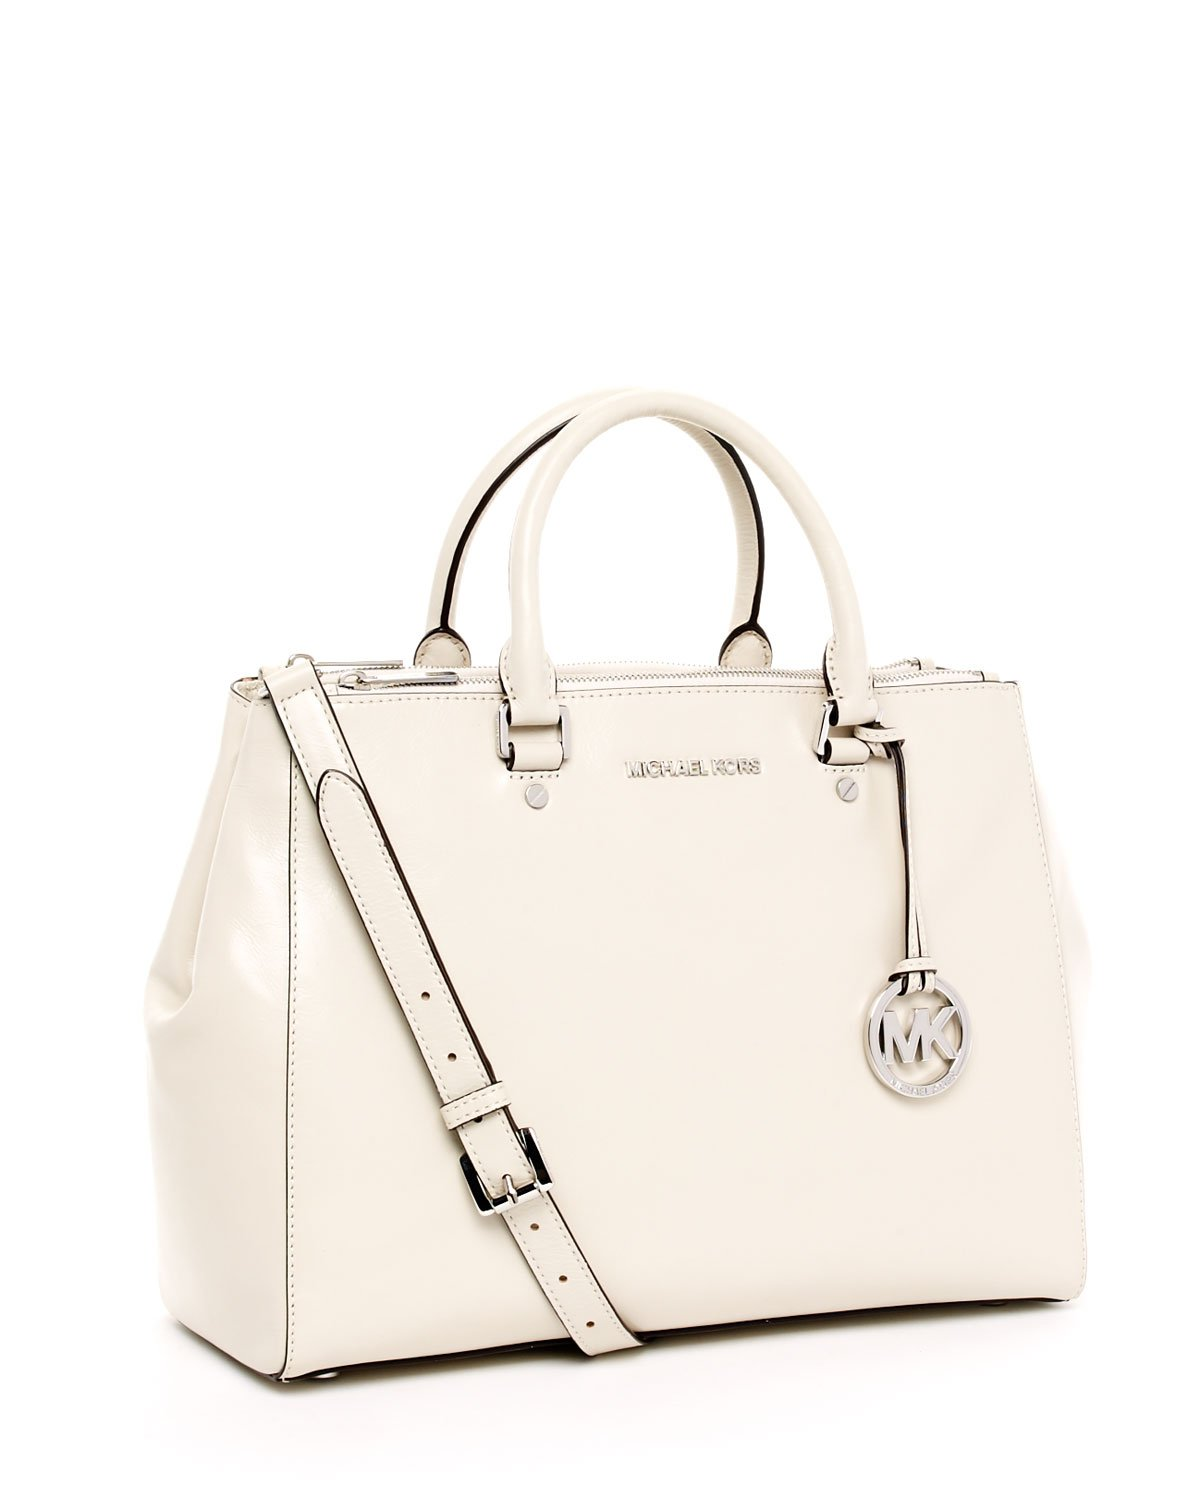 f8334d505213a5 ... cheap lyst michael kors large bedford dressy tote vanilla in white  63a96 49268